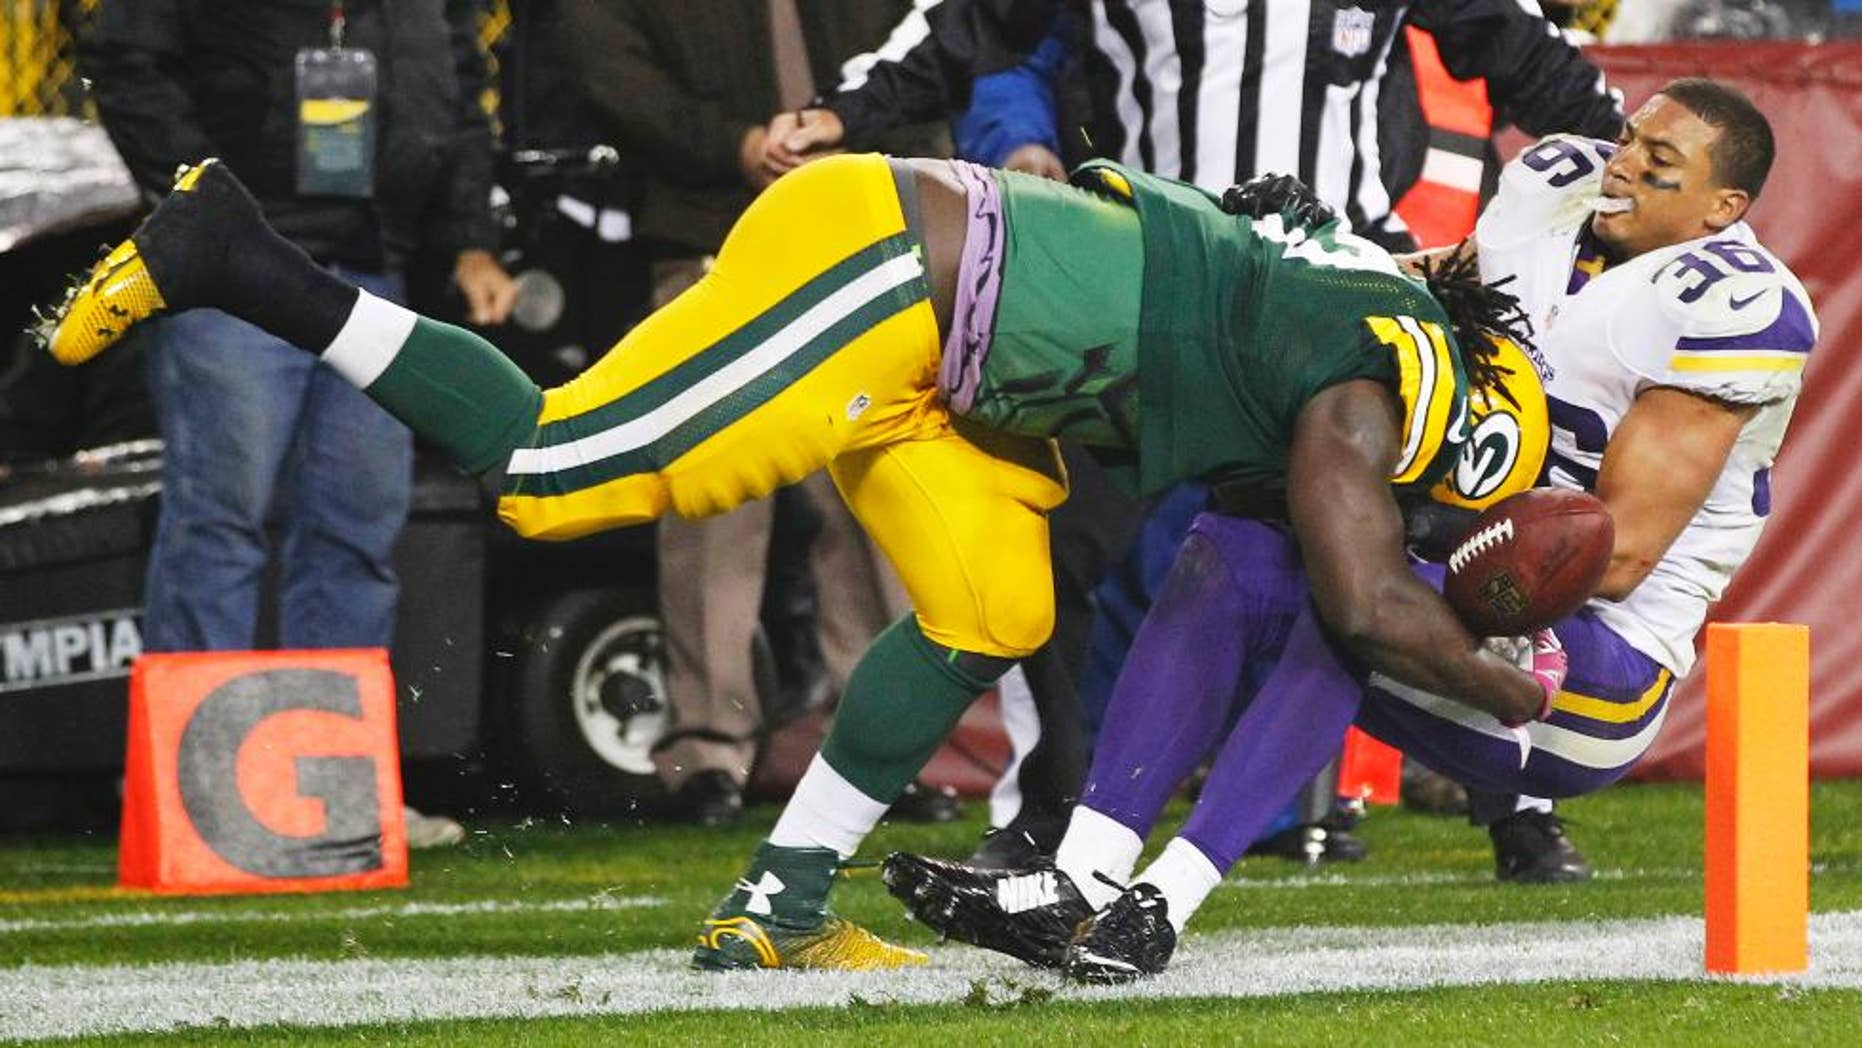 Green Bay Packers' Eddie Lacy gets past Minnesota Vikings' Robert Blanton (36) for a 10-yard touchdown run during the second half of an NFL football game Thursday, Oct. 2, 2014, in Green Bay, Wis. (AP Photo/Mike Roemer)